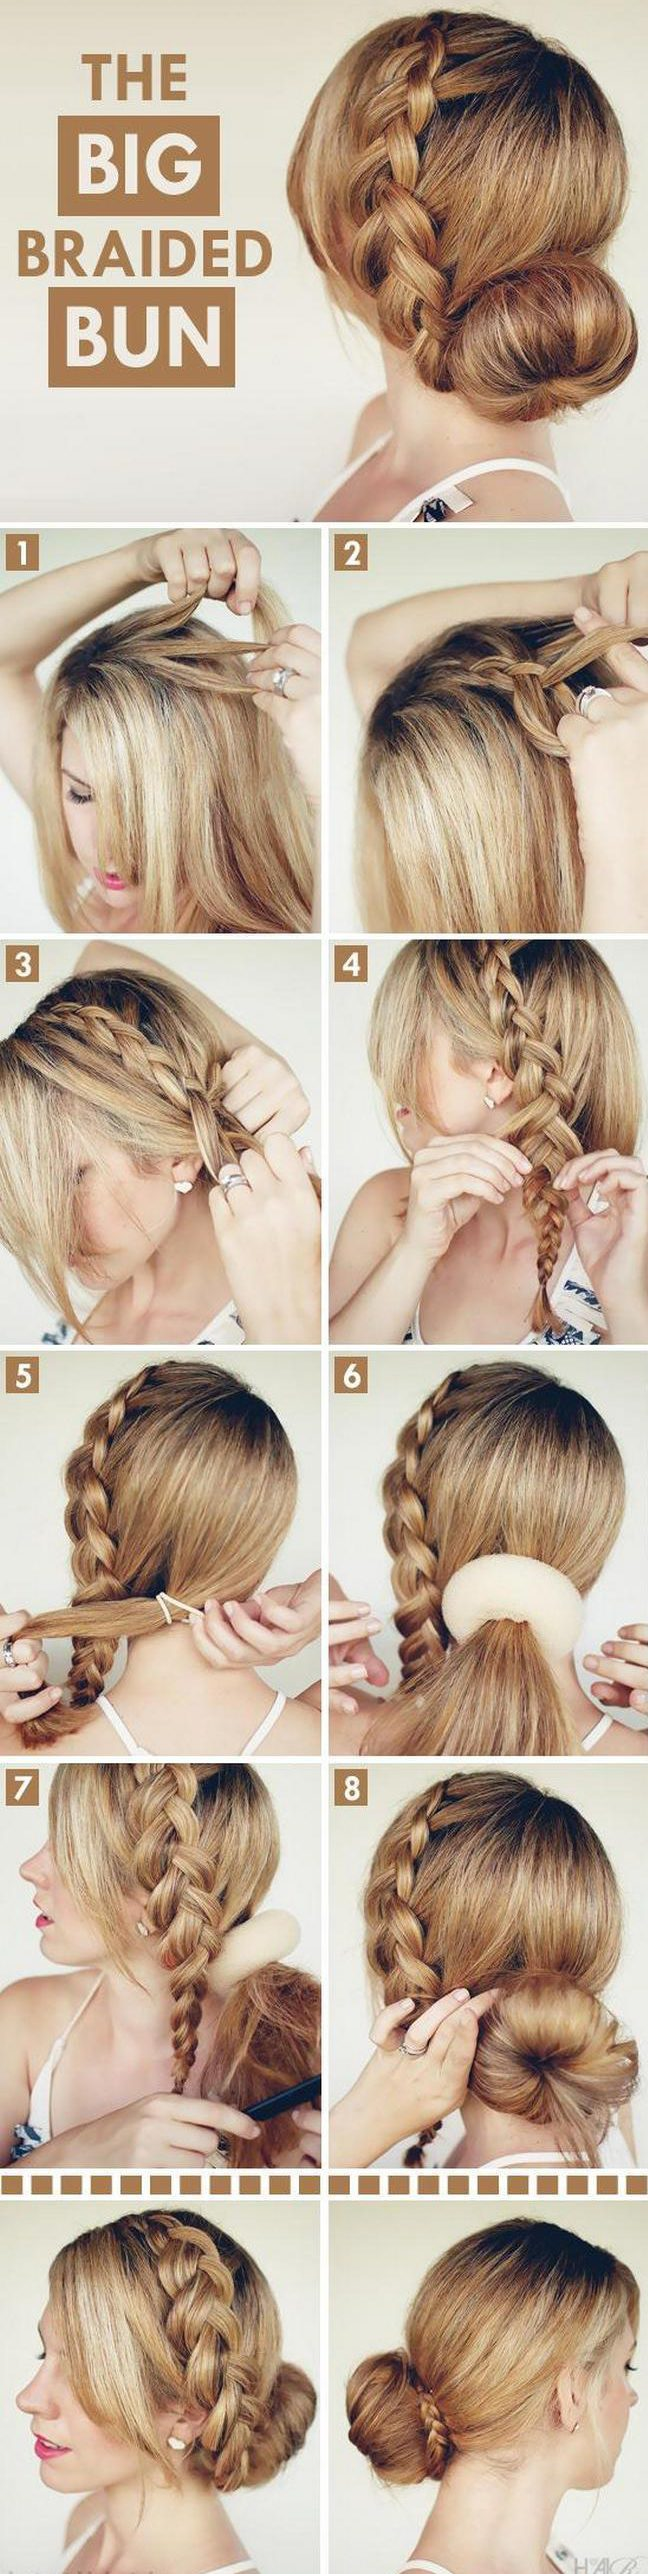 big-braided-bun-w650-min